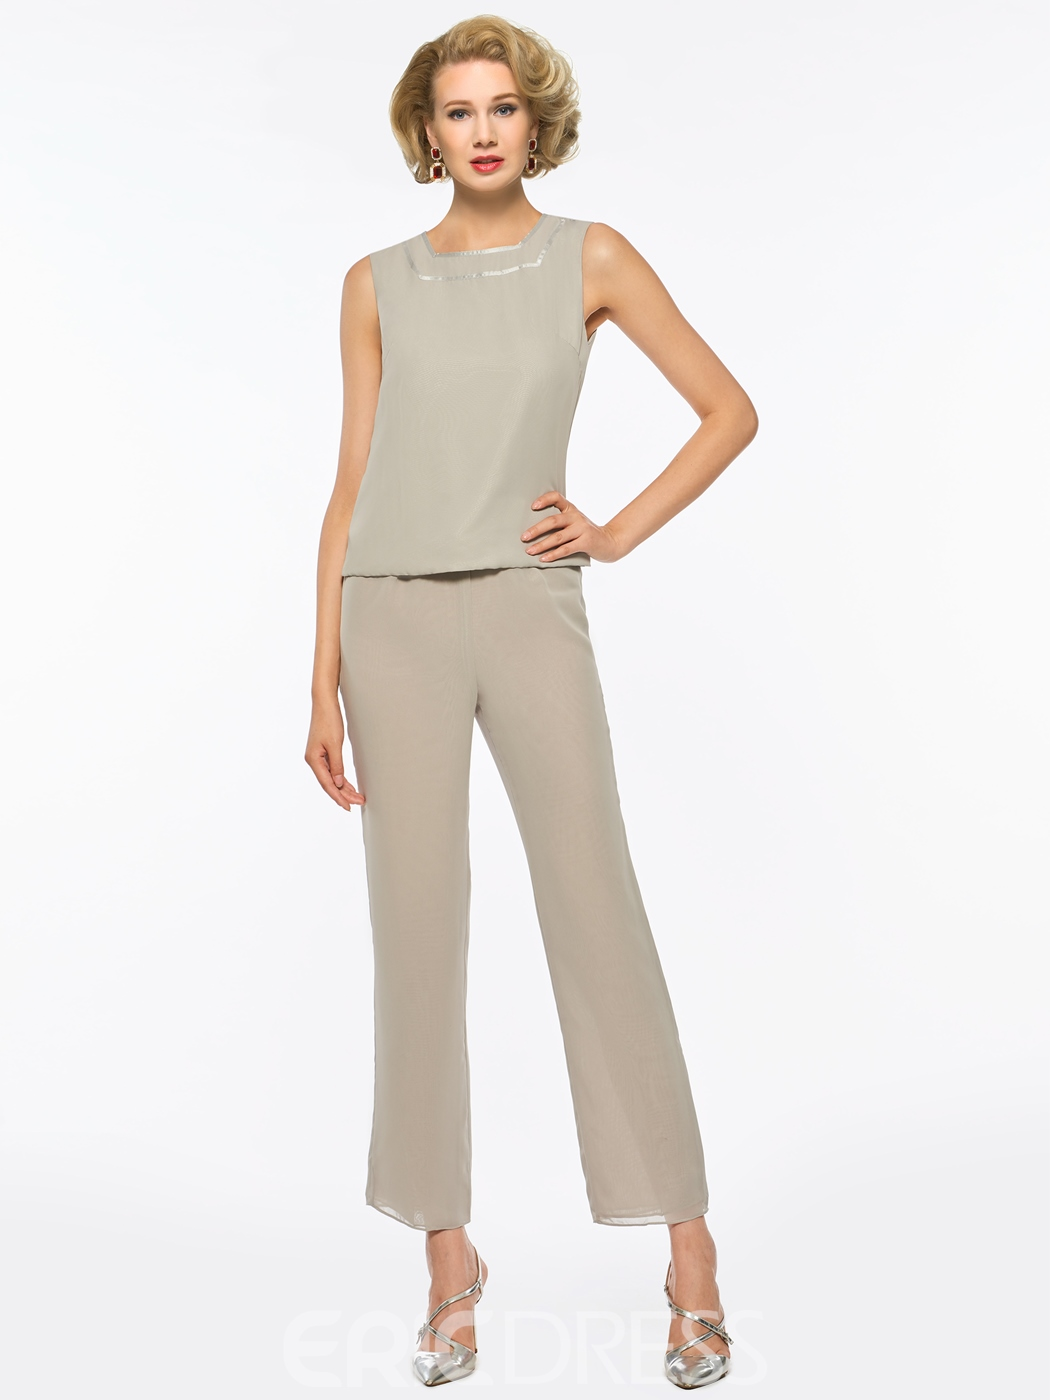 Ericdress Straps 3 Pieces Mother of the Bride Pantsuits with Jacket